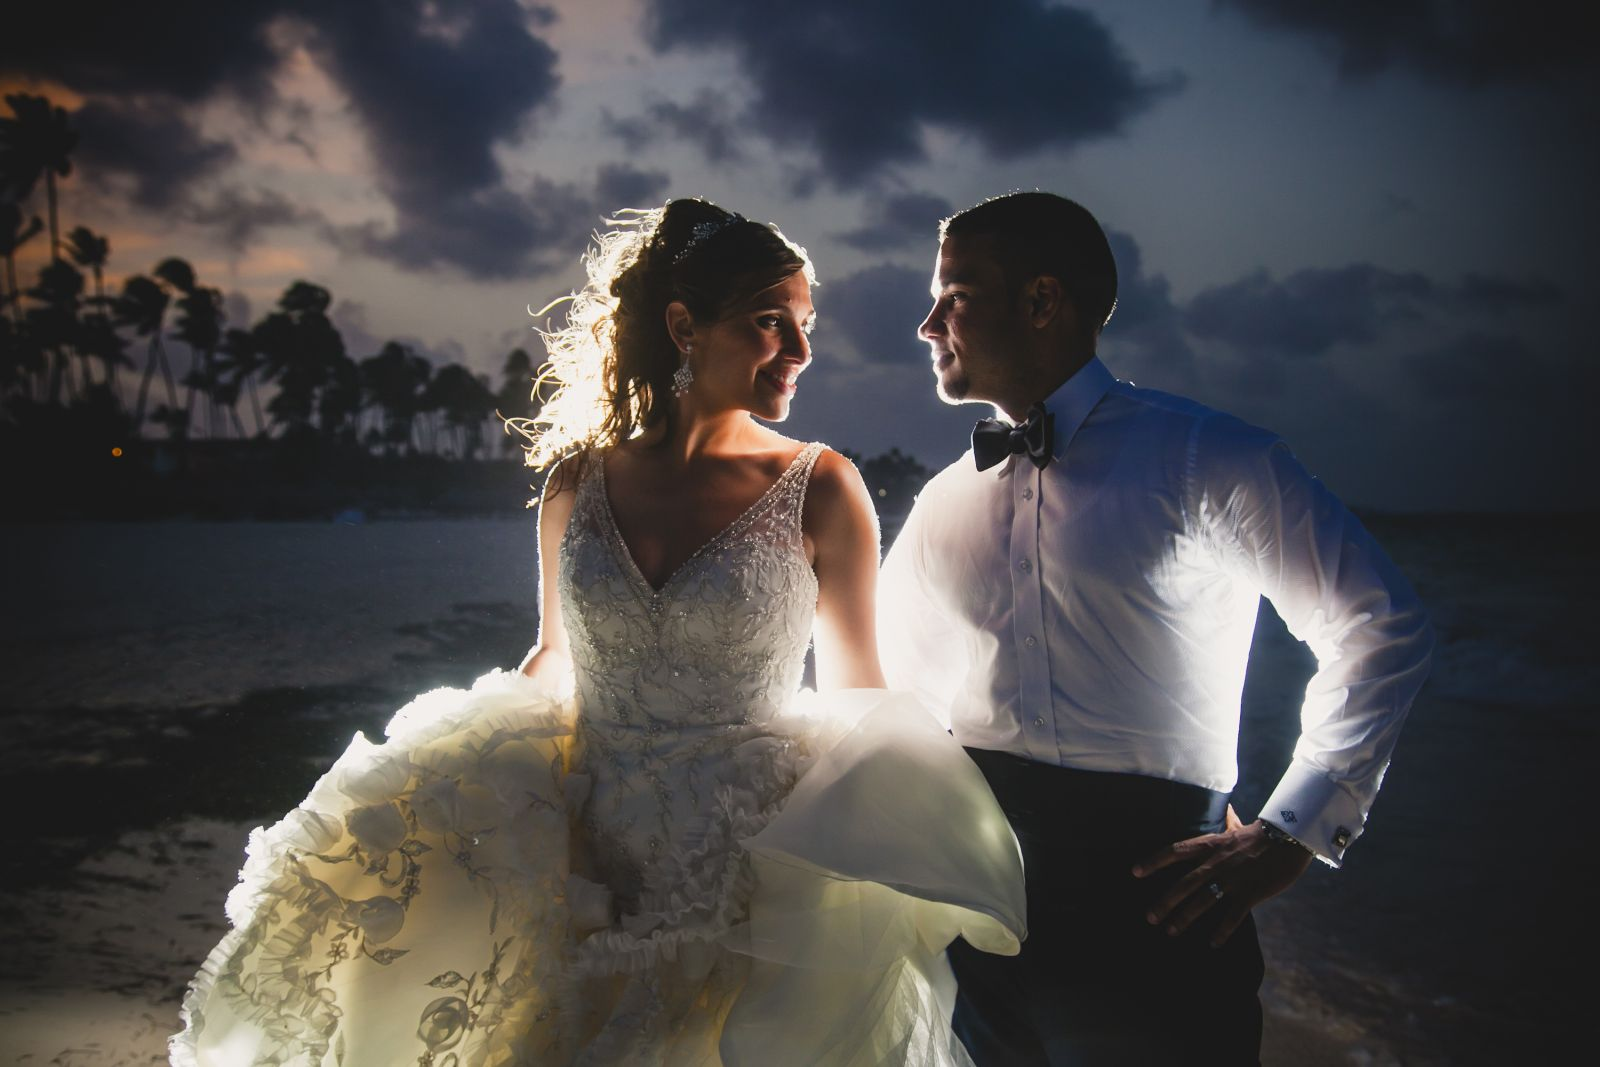 All aglow with love- one of my favorite wedding pictures